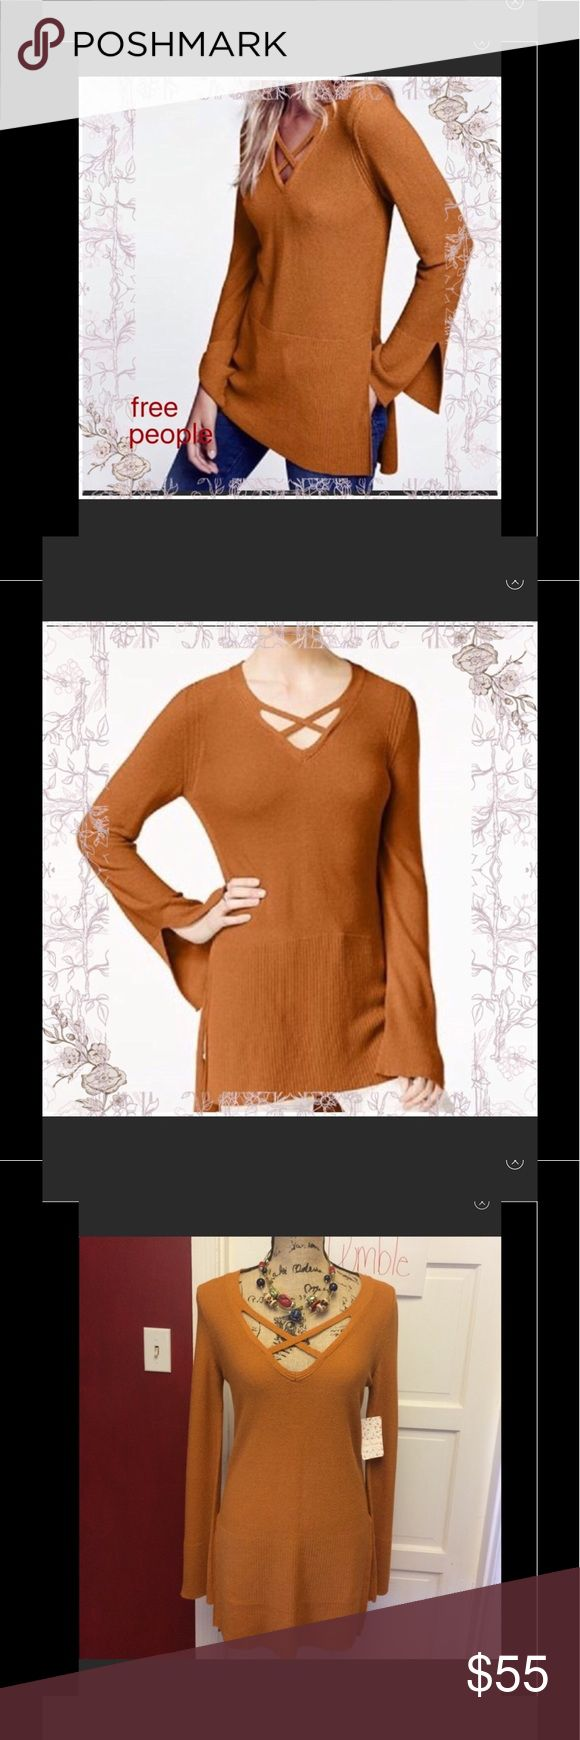 NWOT free people criss cross ginger sweater tunic New without tags free people sweater tunic - gorgeous color is ginger root these are all new without tags- one of the smalls is missing it's inner metal free people tag Free People Sweaters